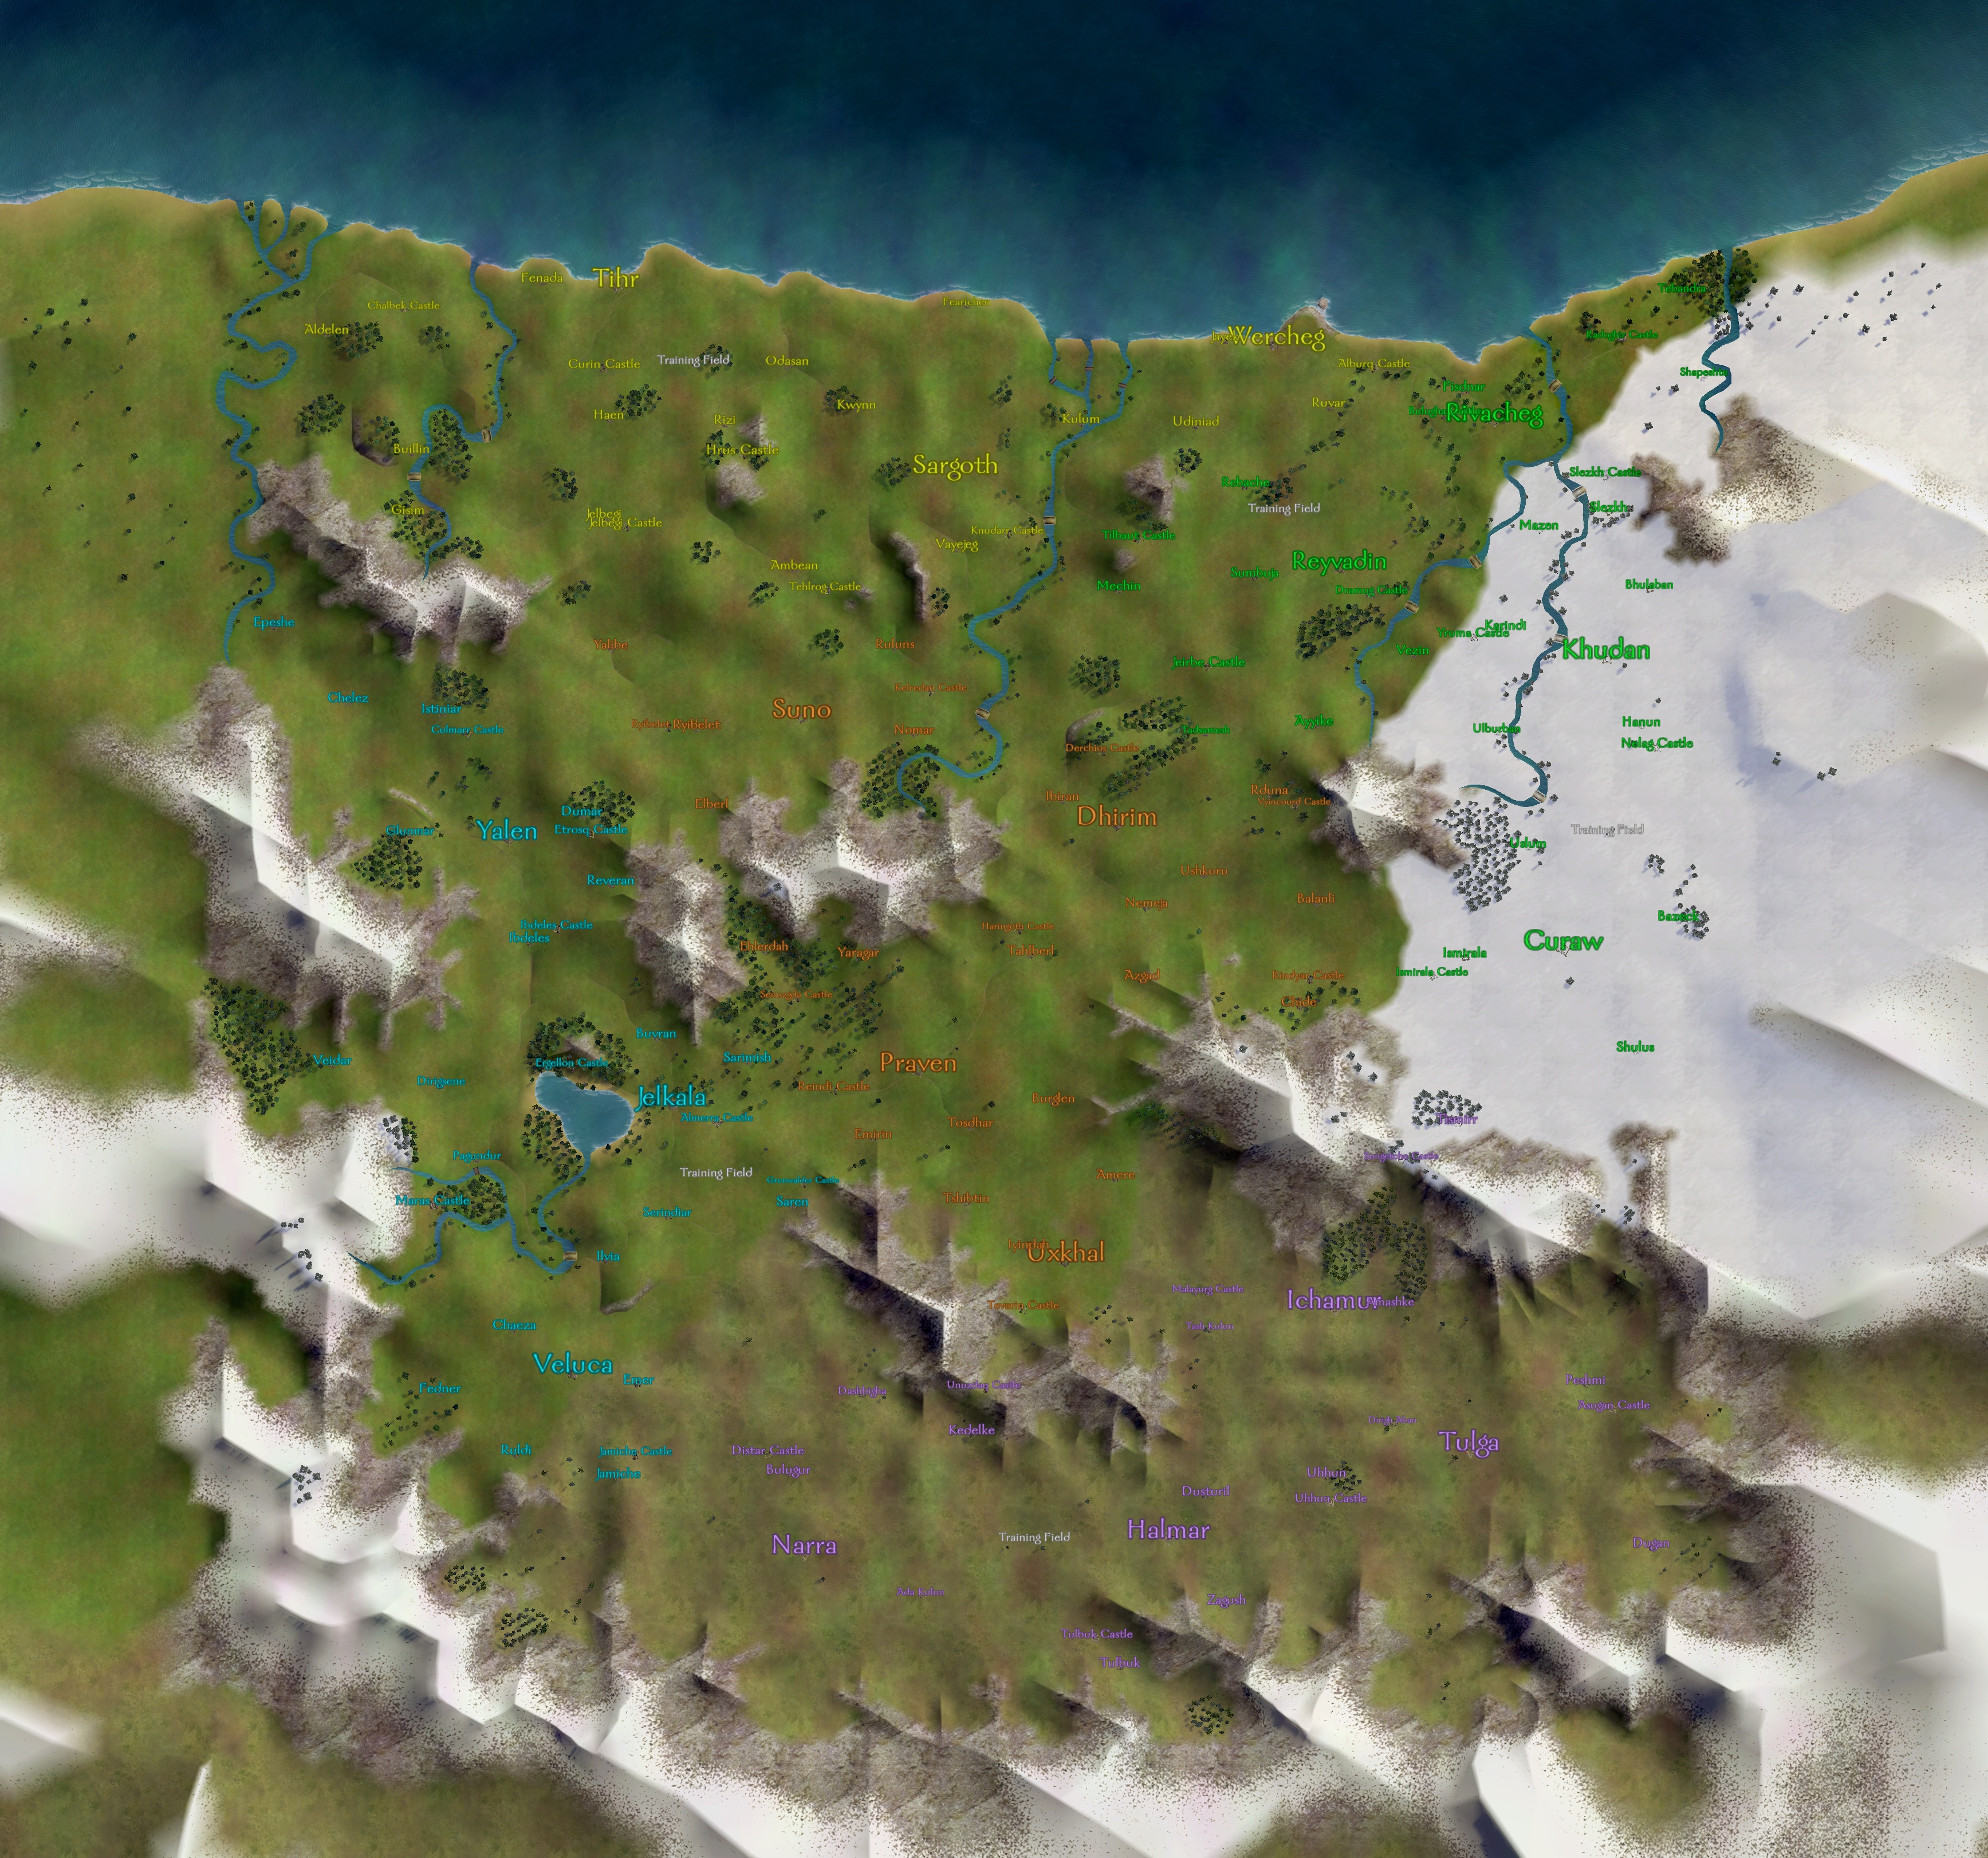 Mount and blade map my blog updated gumiabroncs Choice Image